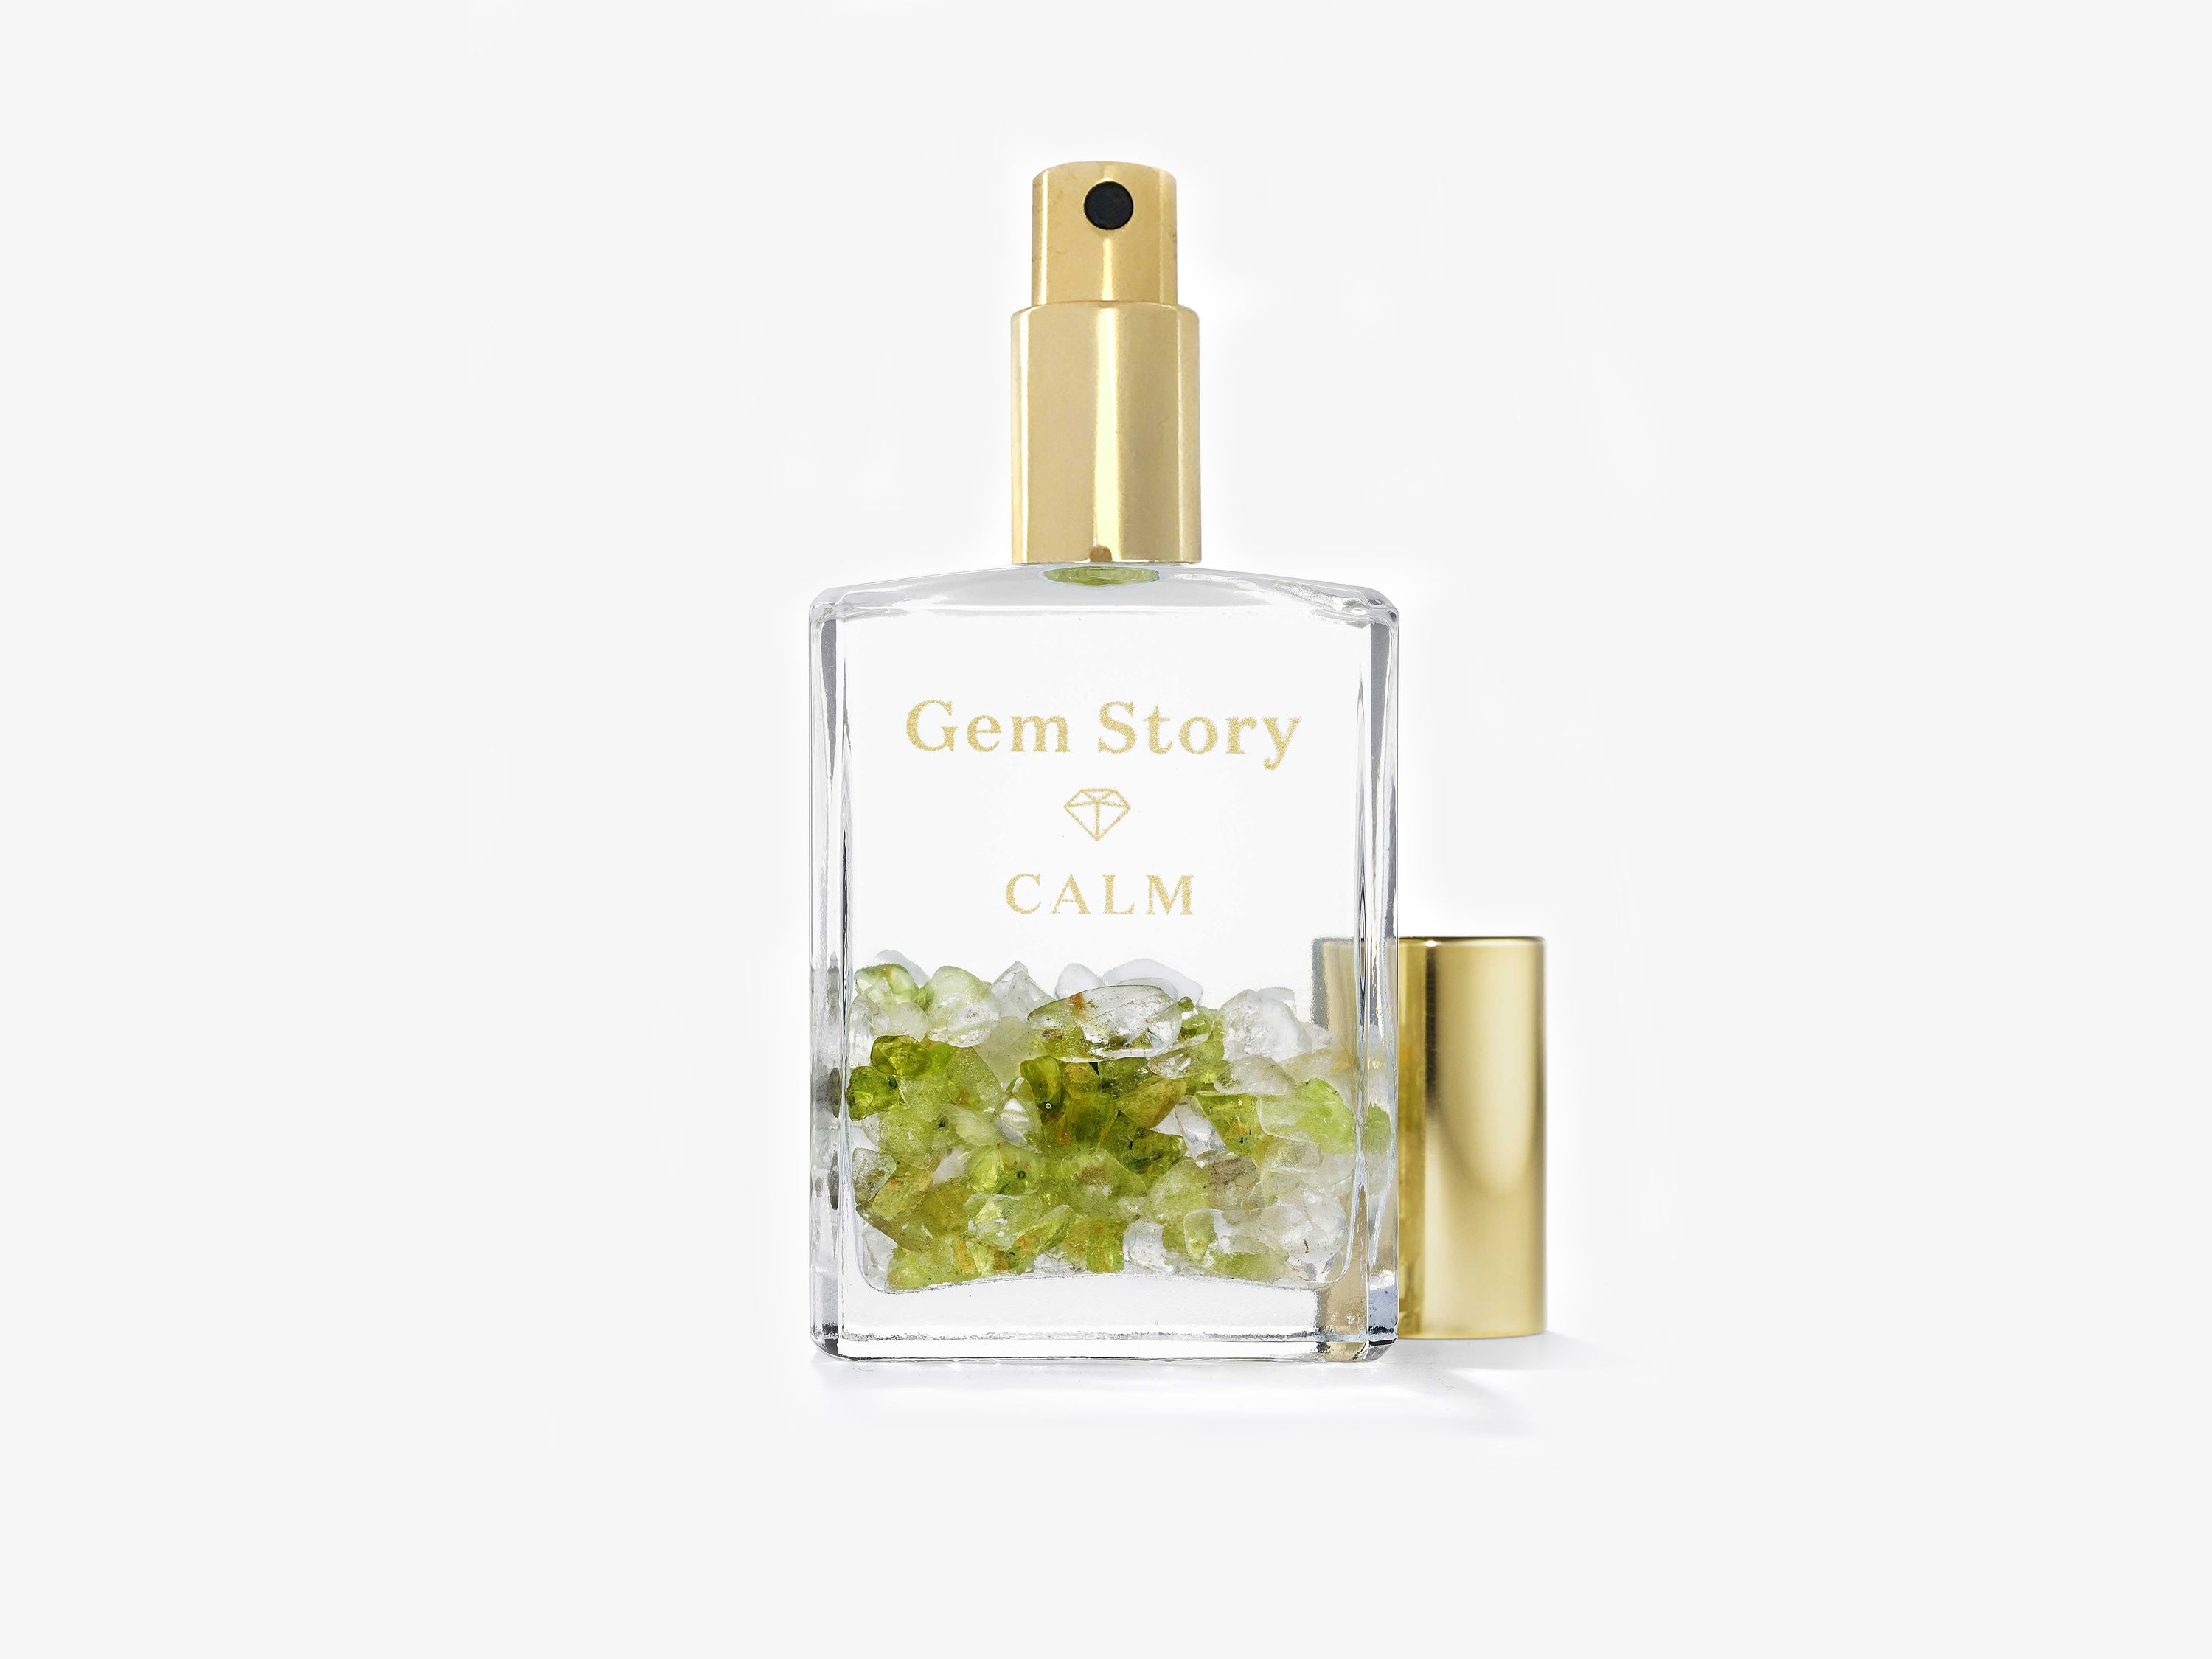 Calm Gem Story Oil (30ml)